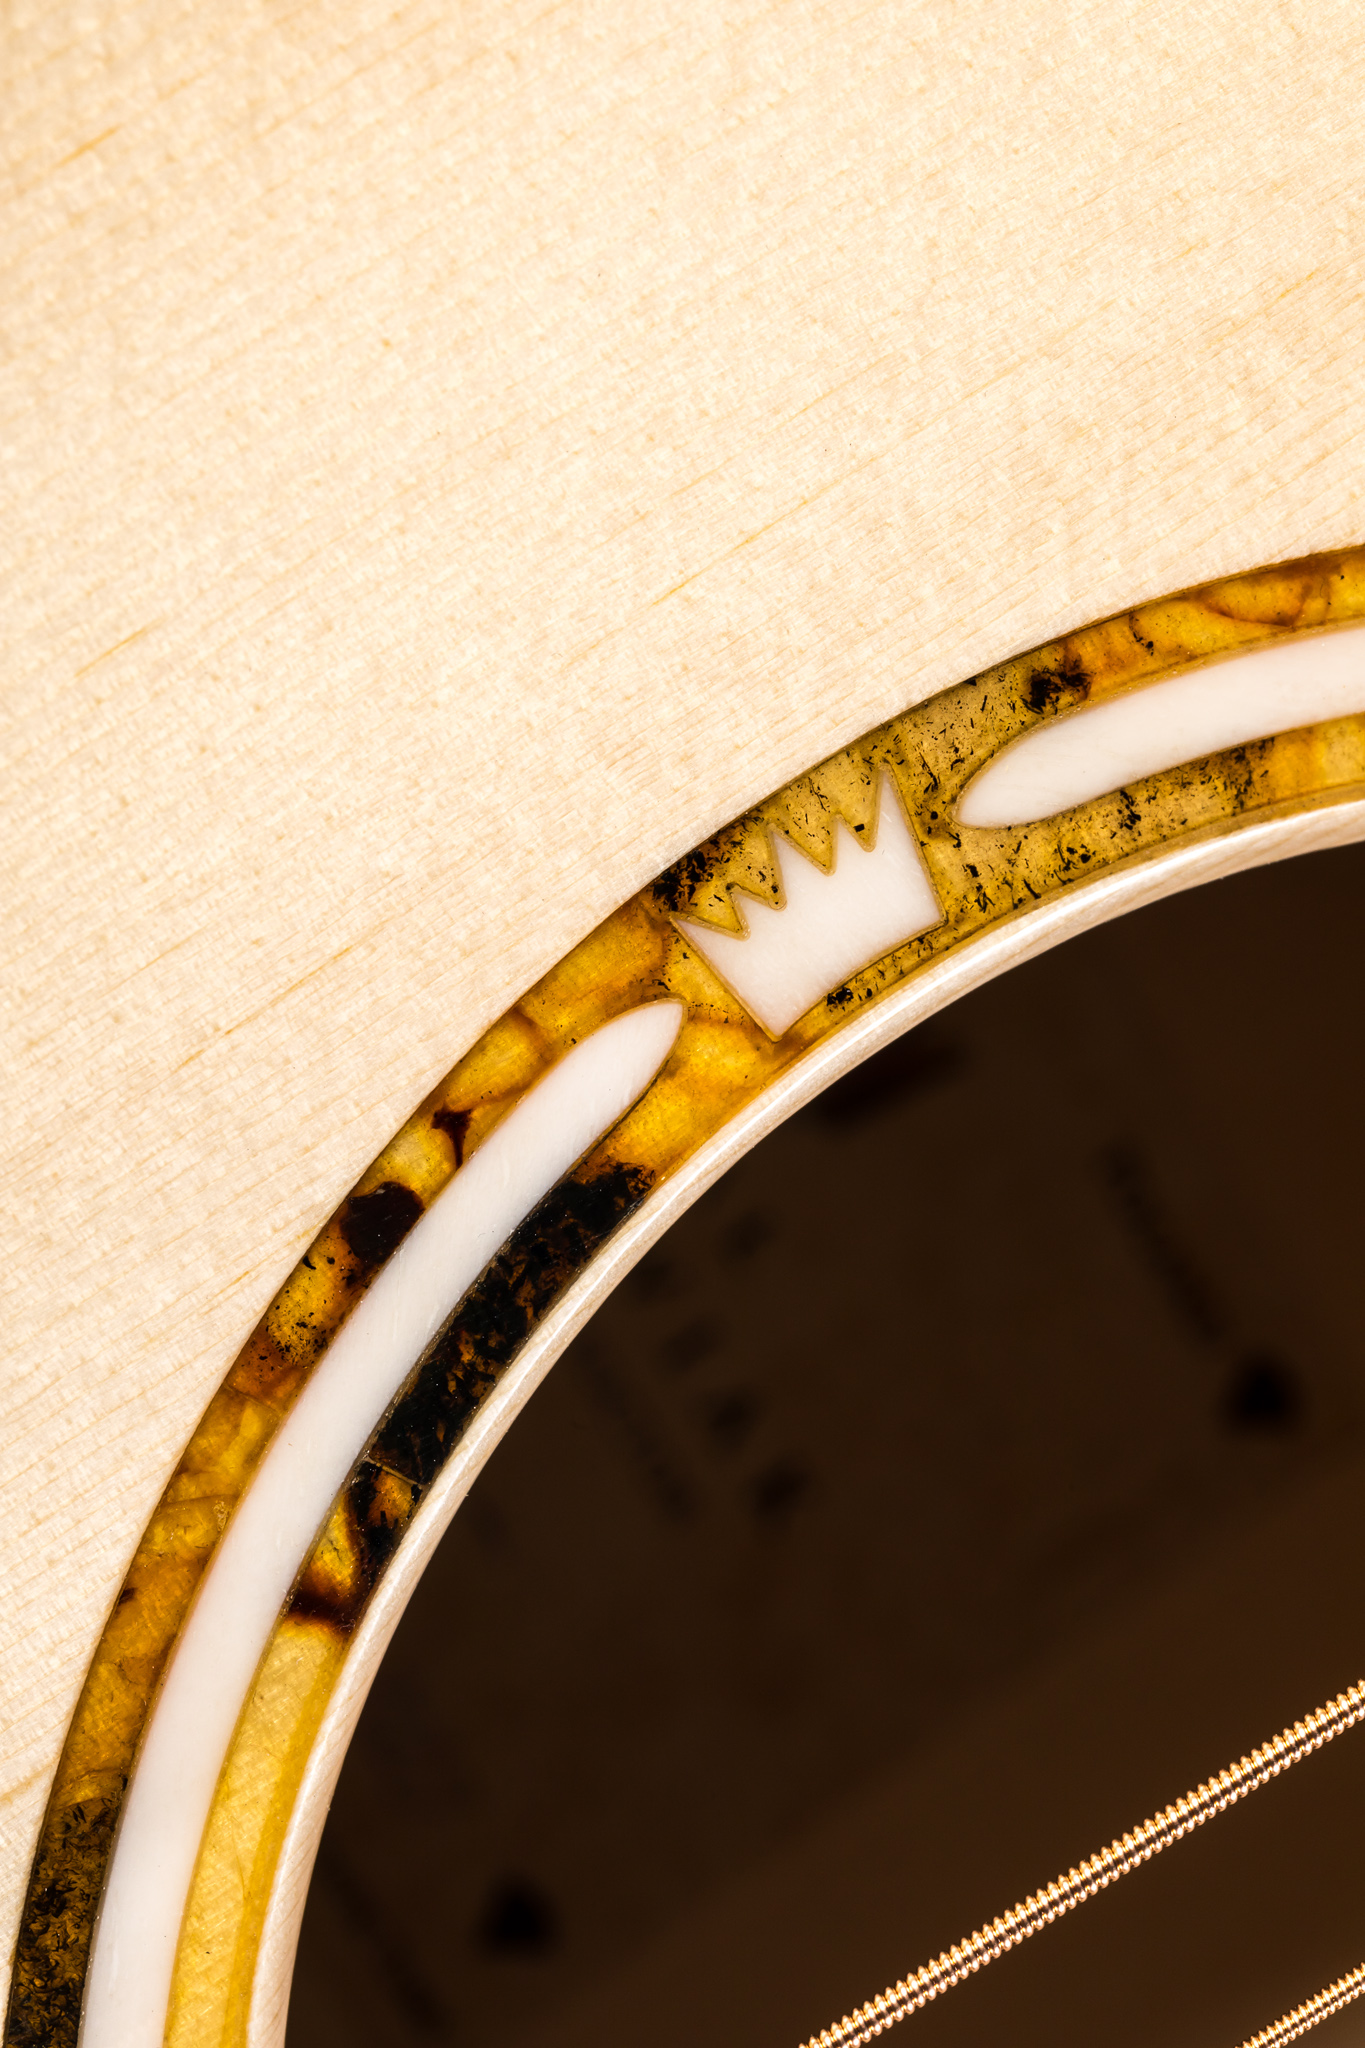 Natural Baltic Amber guitar rosette inlay